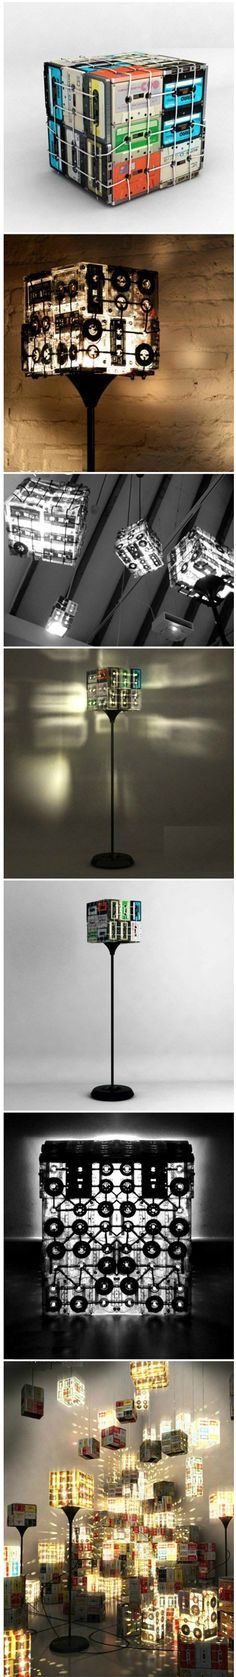 Homemade lamps from music cassettes- Selbstgemacht Lampen aus Musikkassetten Homemade lamps from music cassettes - Diy Luz, Craft Tutorials, Diy Projects, Craft Ideas, Diy Ideas, Lampe Retro, Ideias Diy, Diy Recycle, Diy Furniture